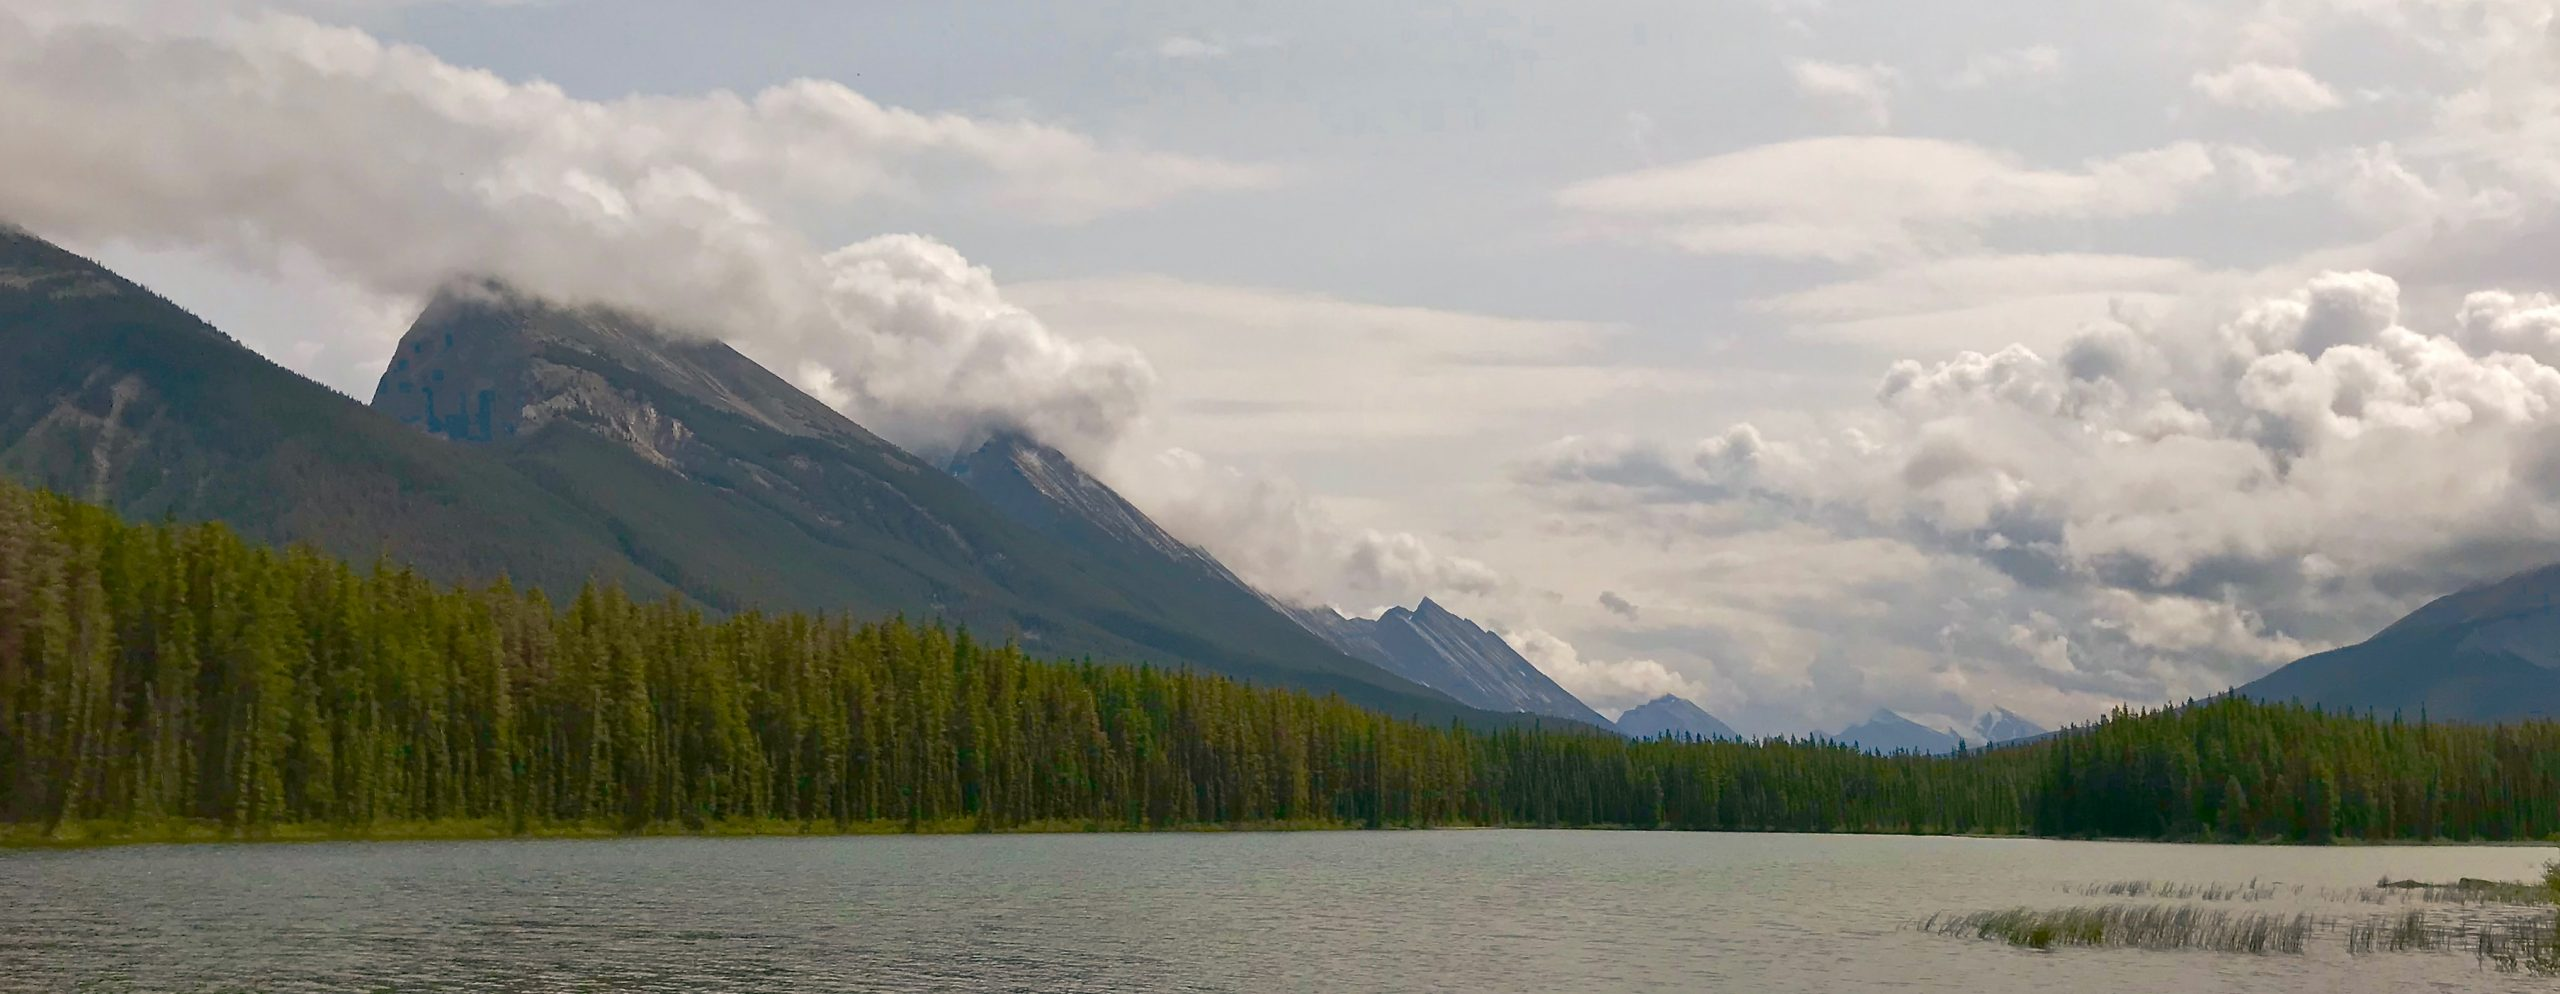 Honeymoon Lake sits at the foot of the Endless Chain Ridge in Jasper National Park.